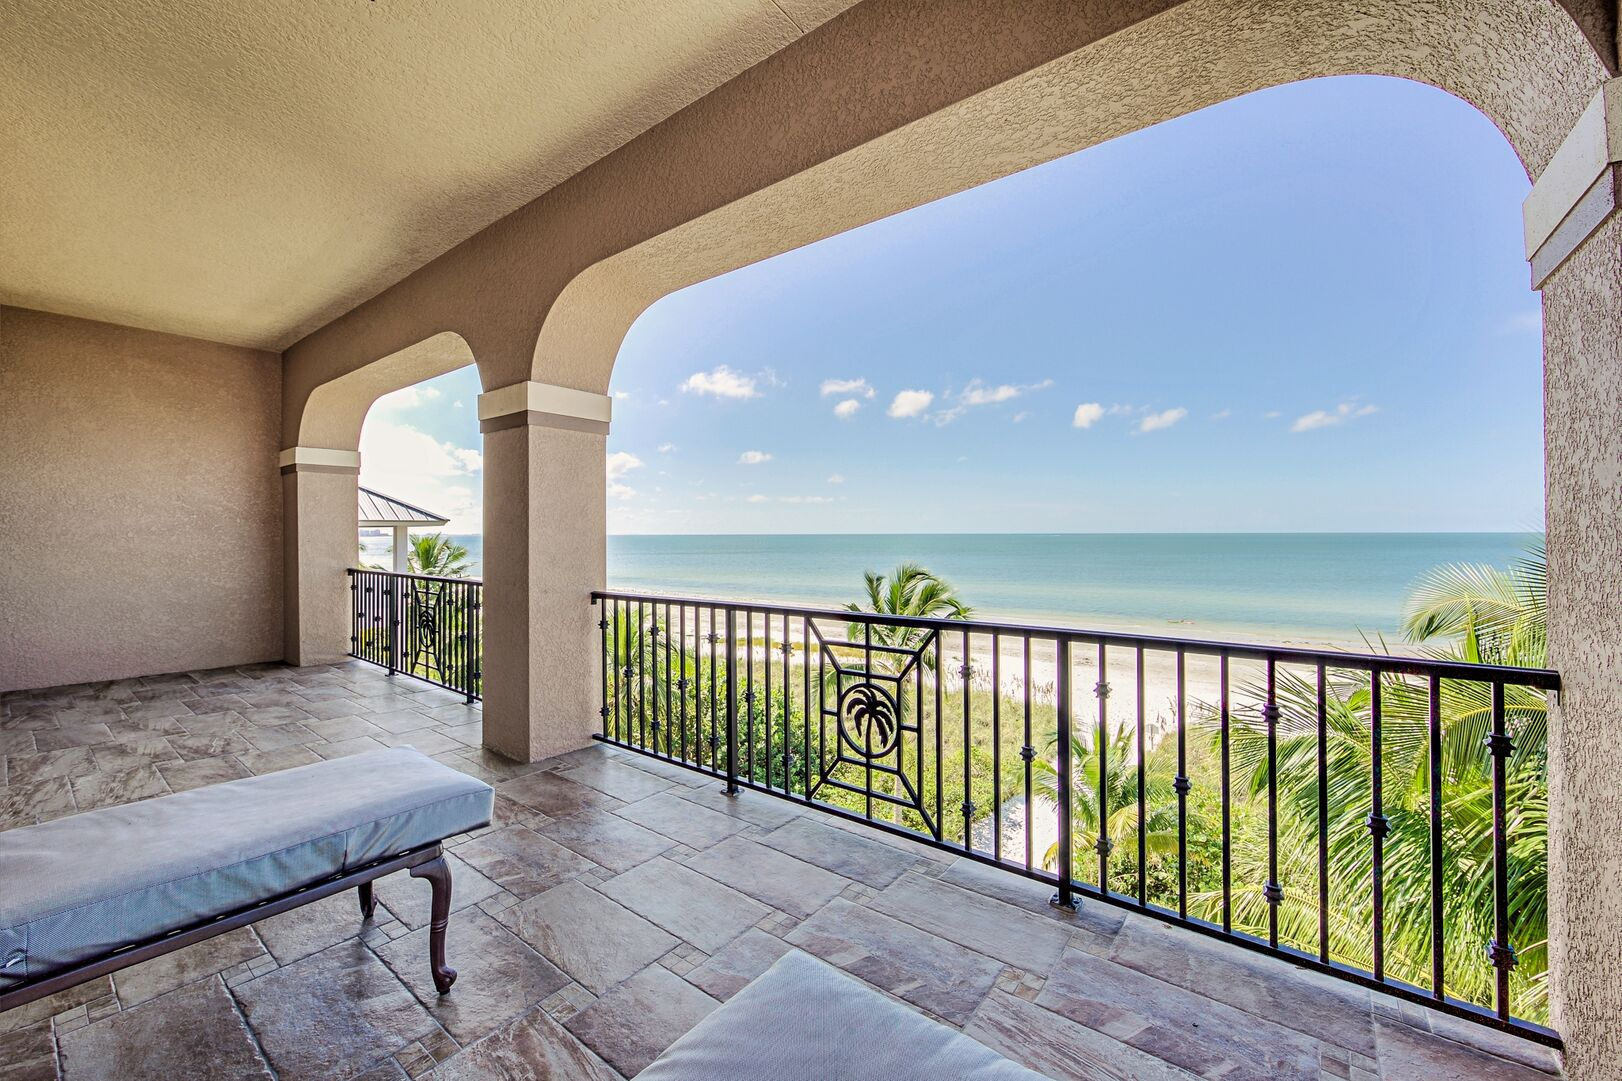 The House Balcony with Views of the Gulf.